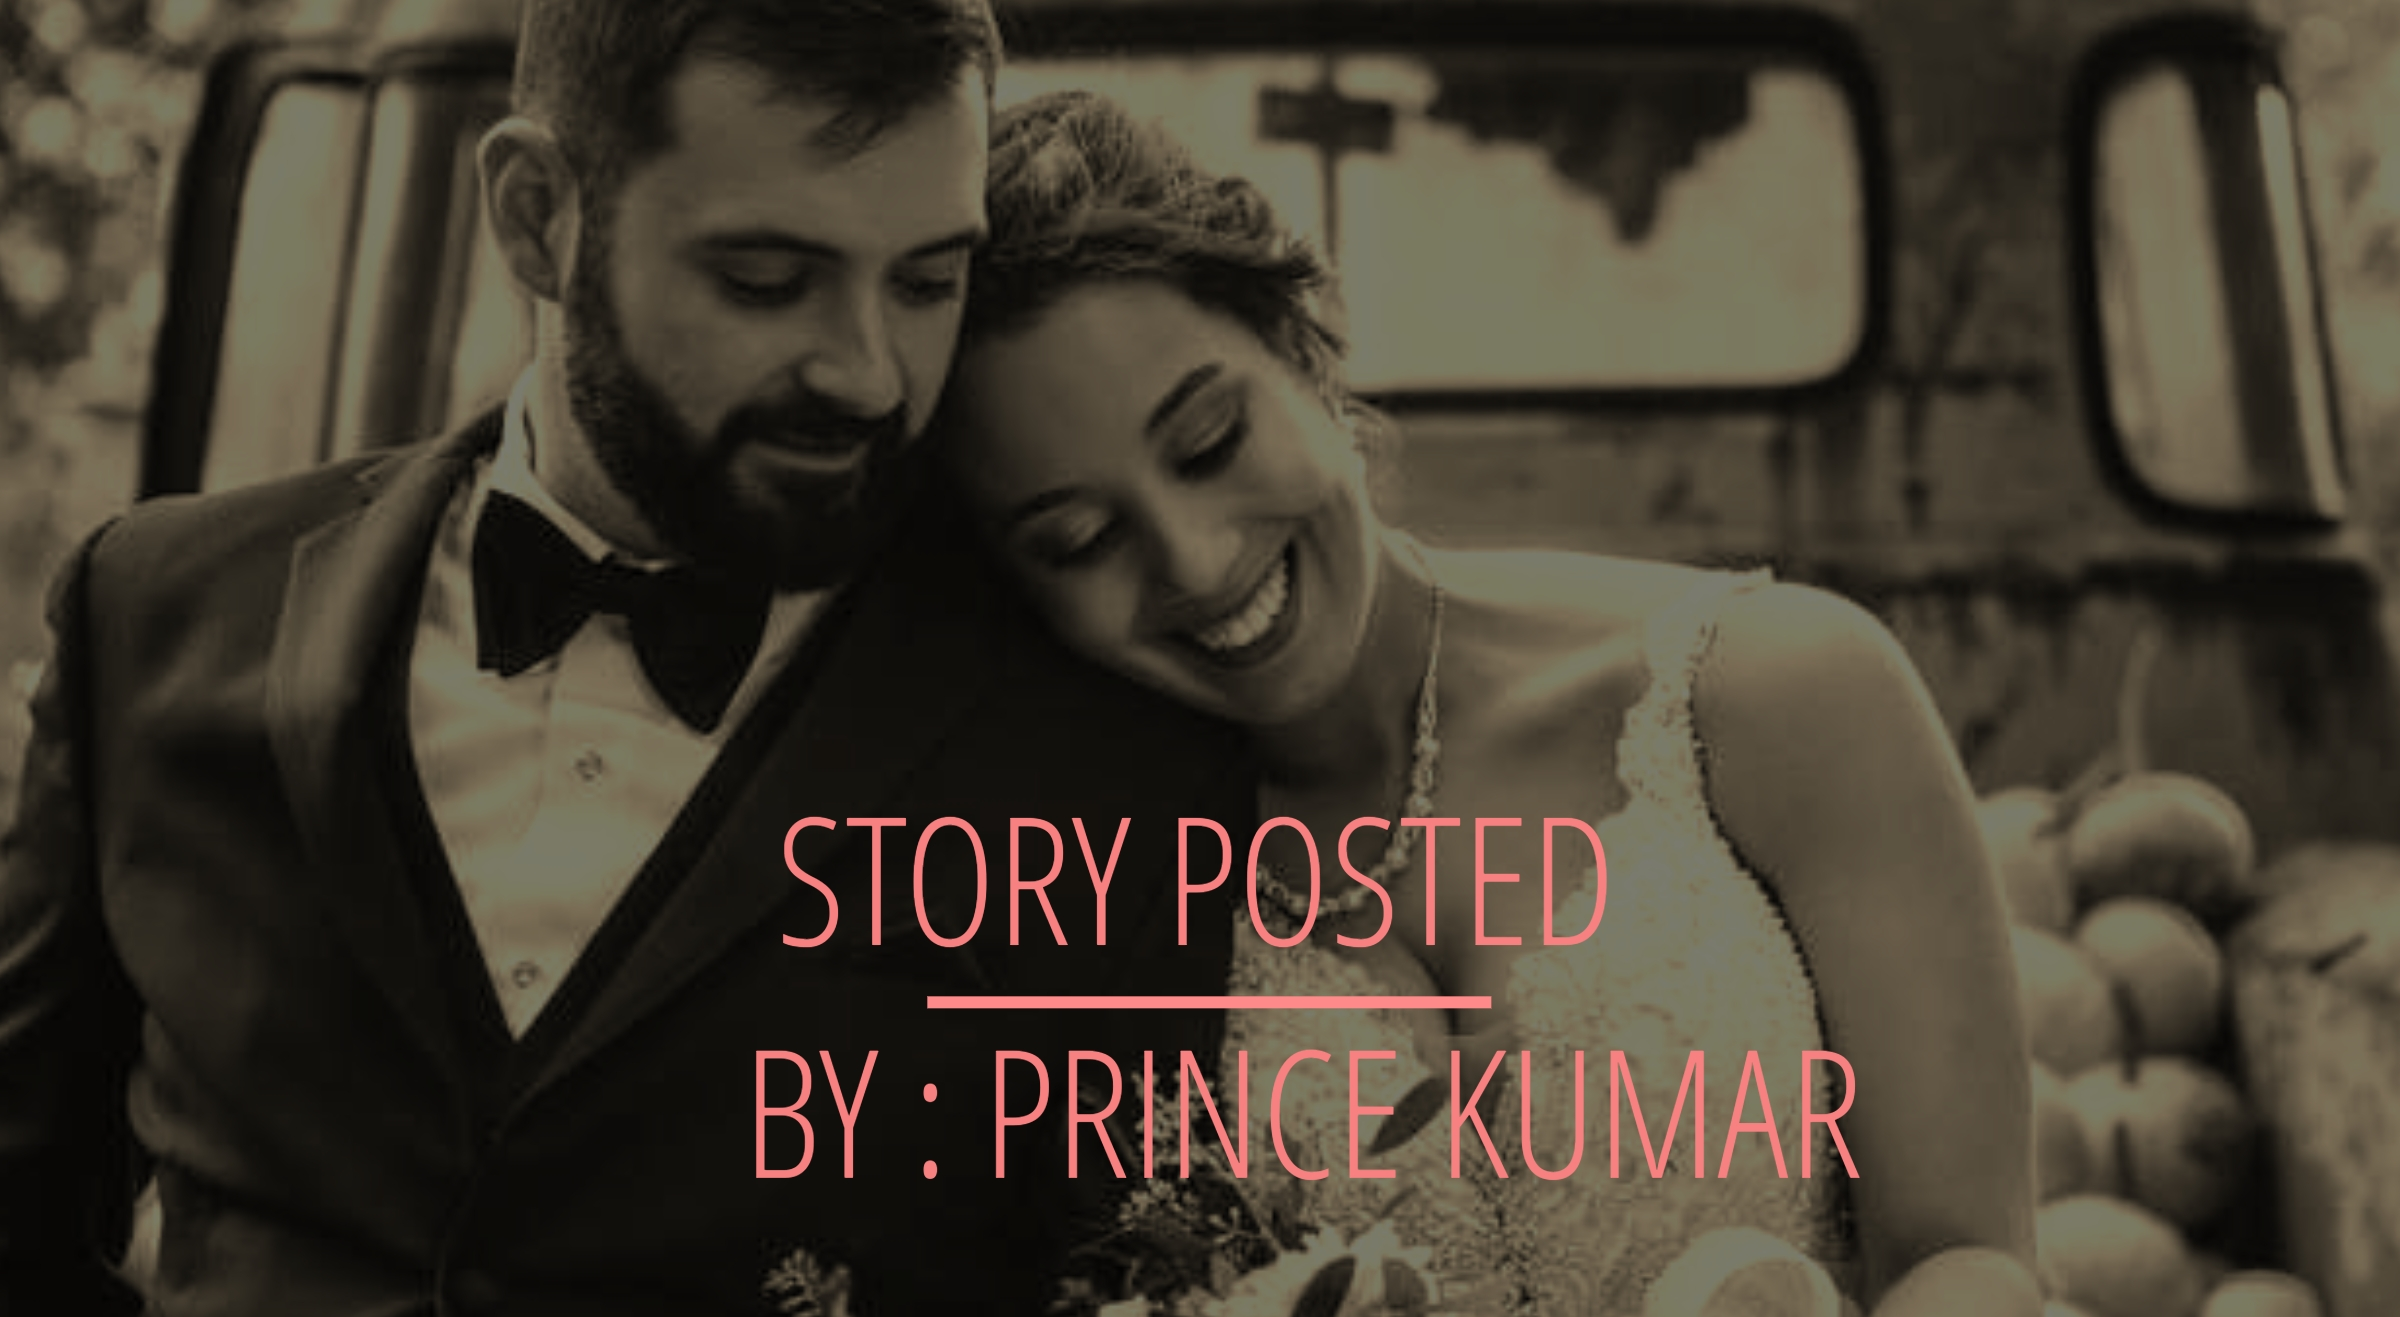 11. STORY POSTED BY PRINCE KUMAR